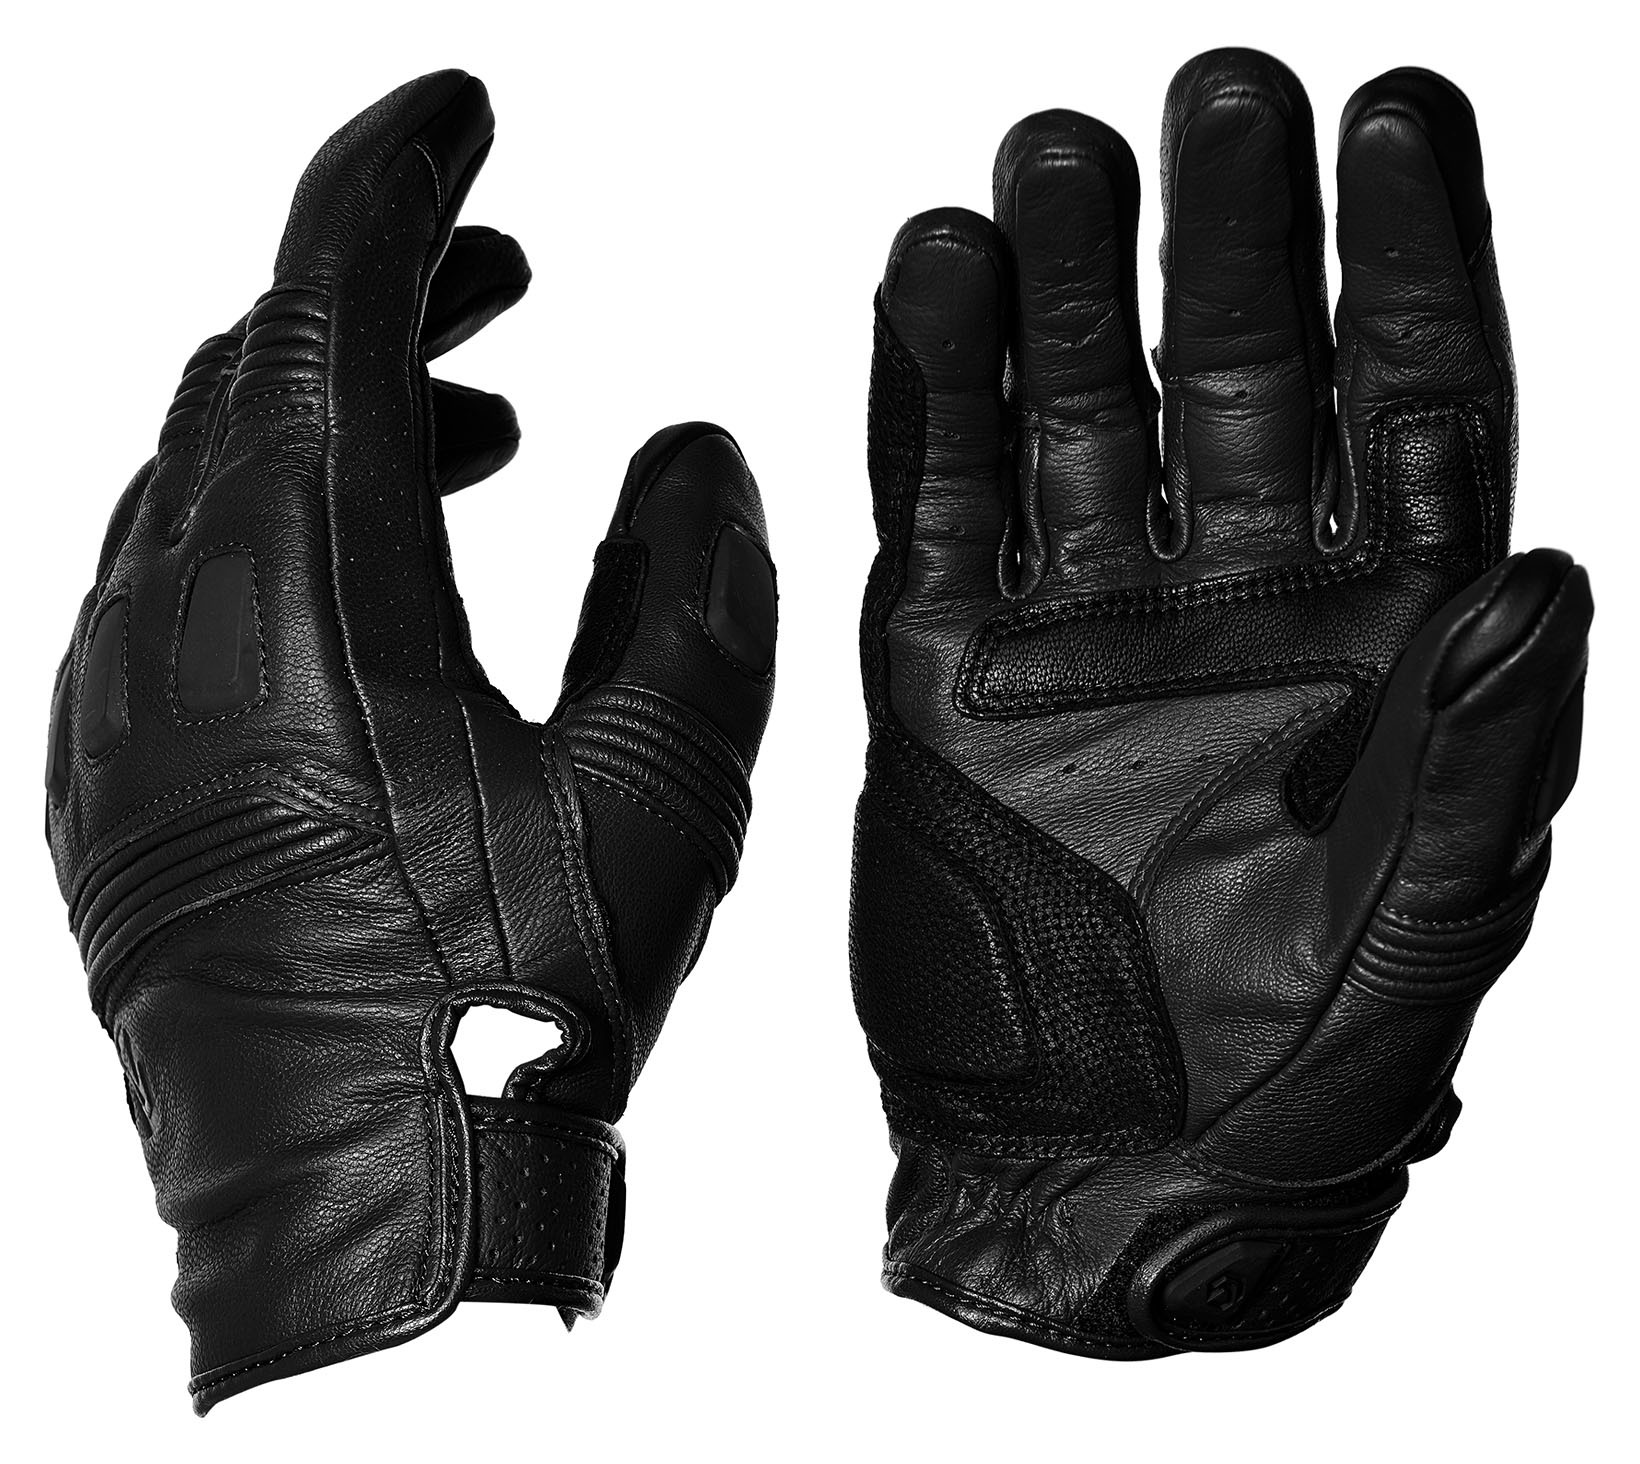 REAX Tasker Leather Gloves - Cycle Gear